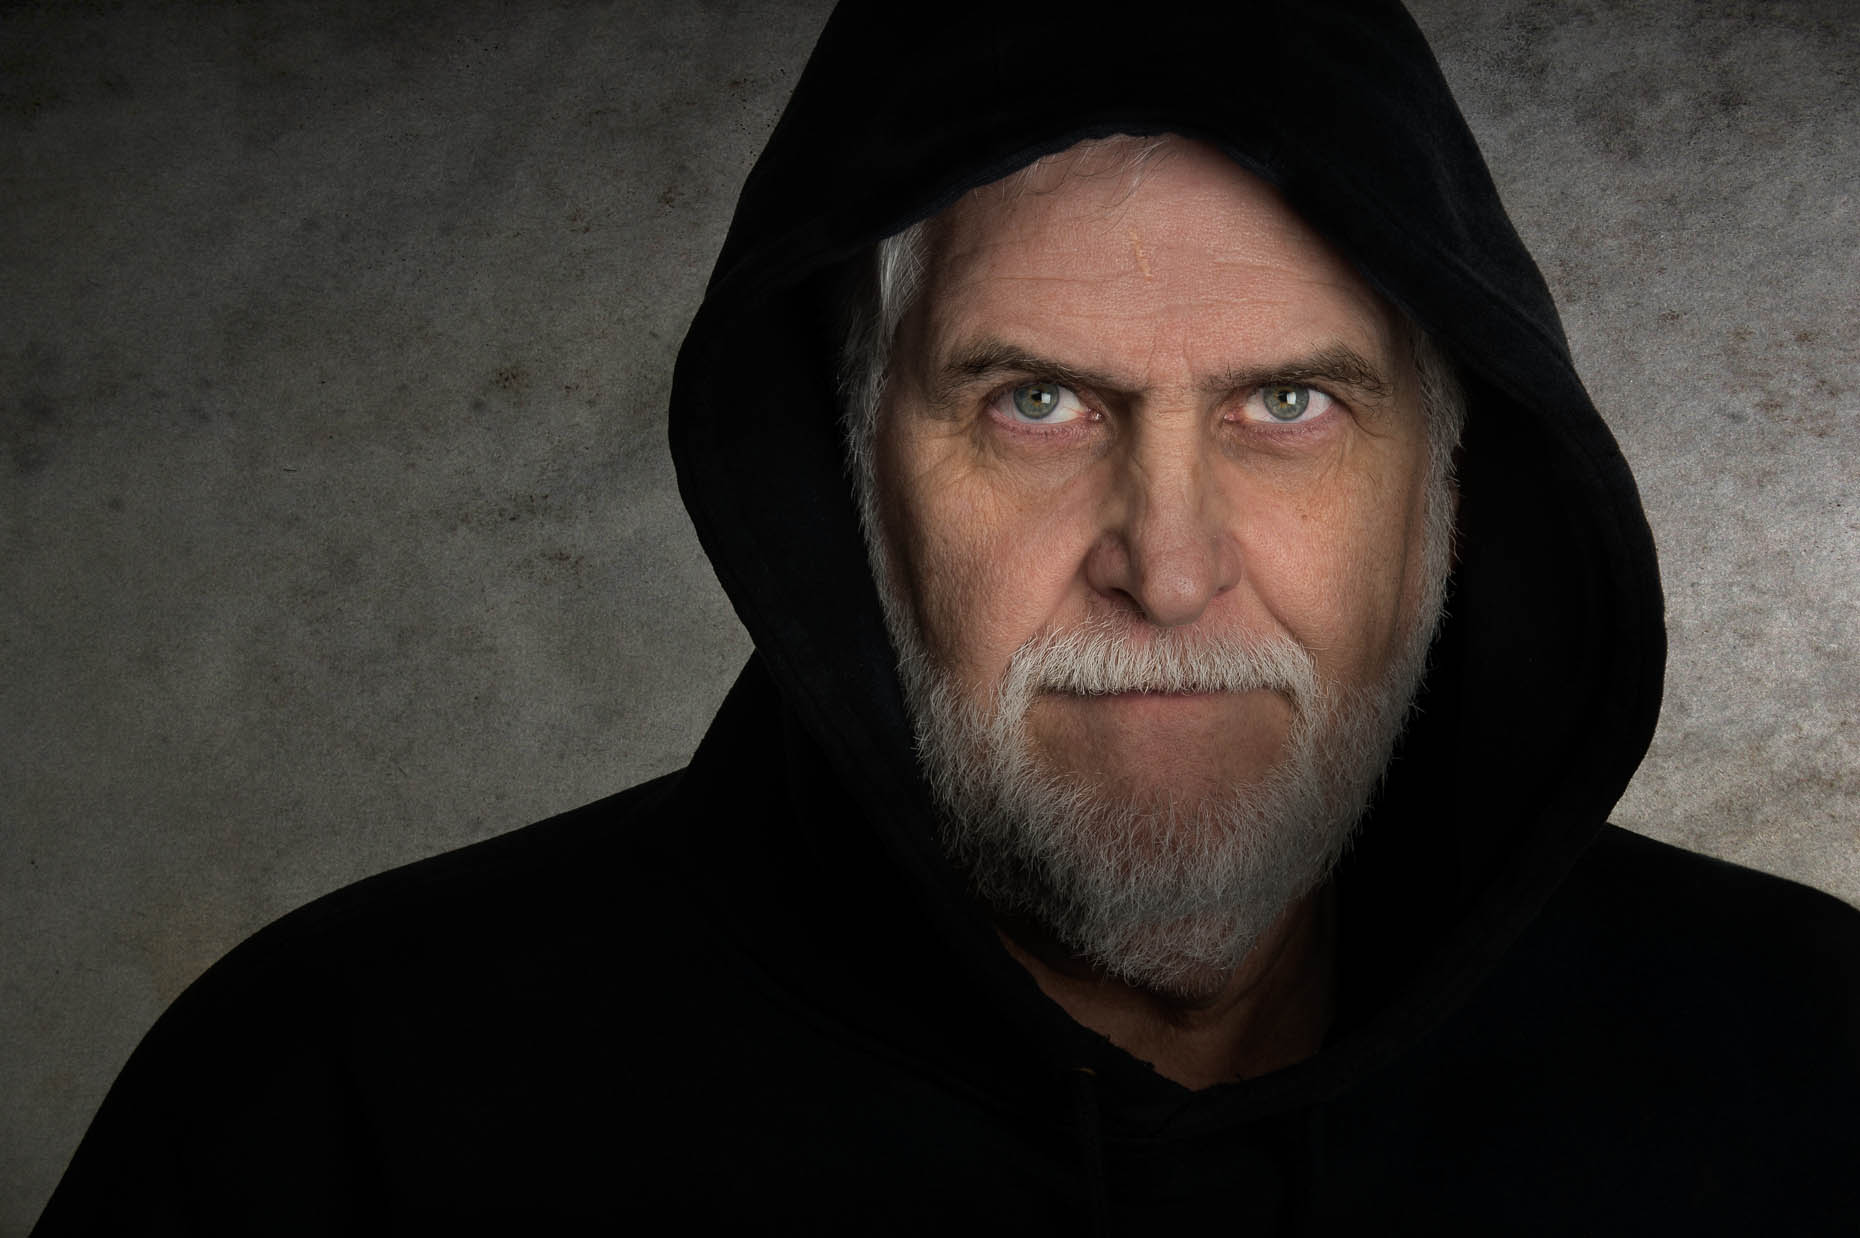 Portrait-older-man-with-hood